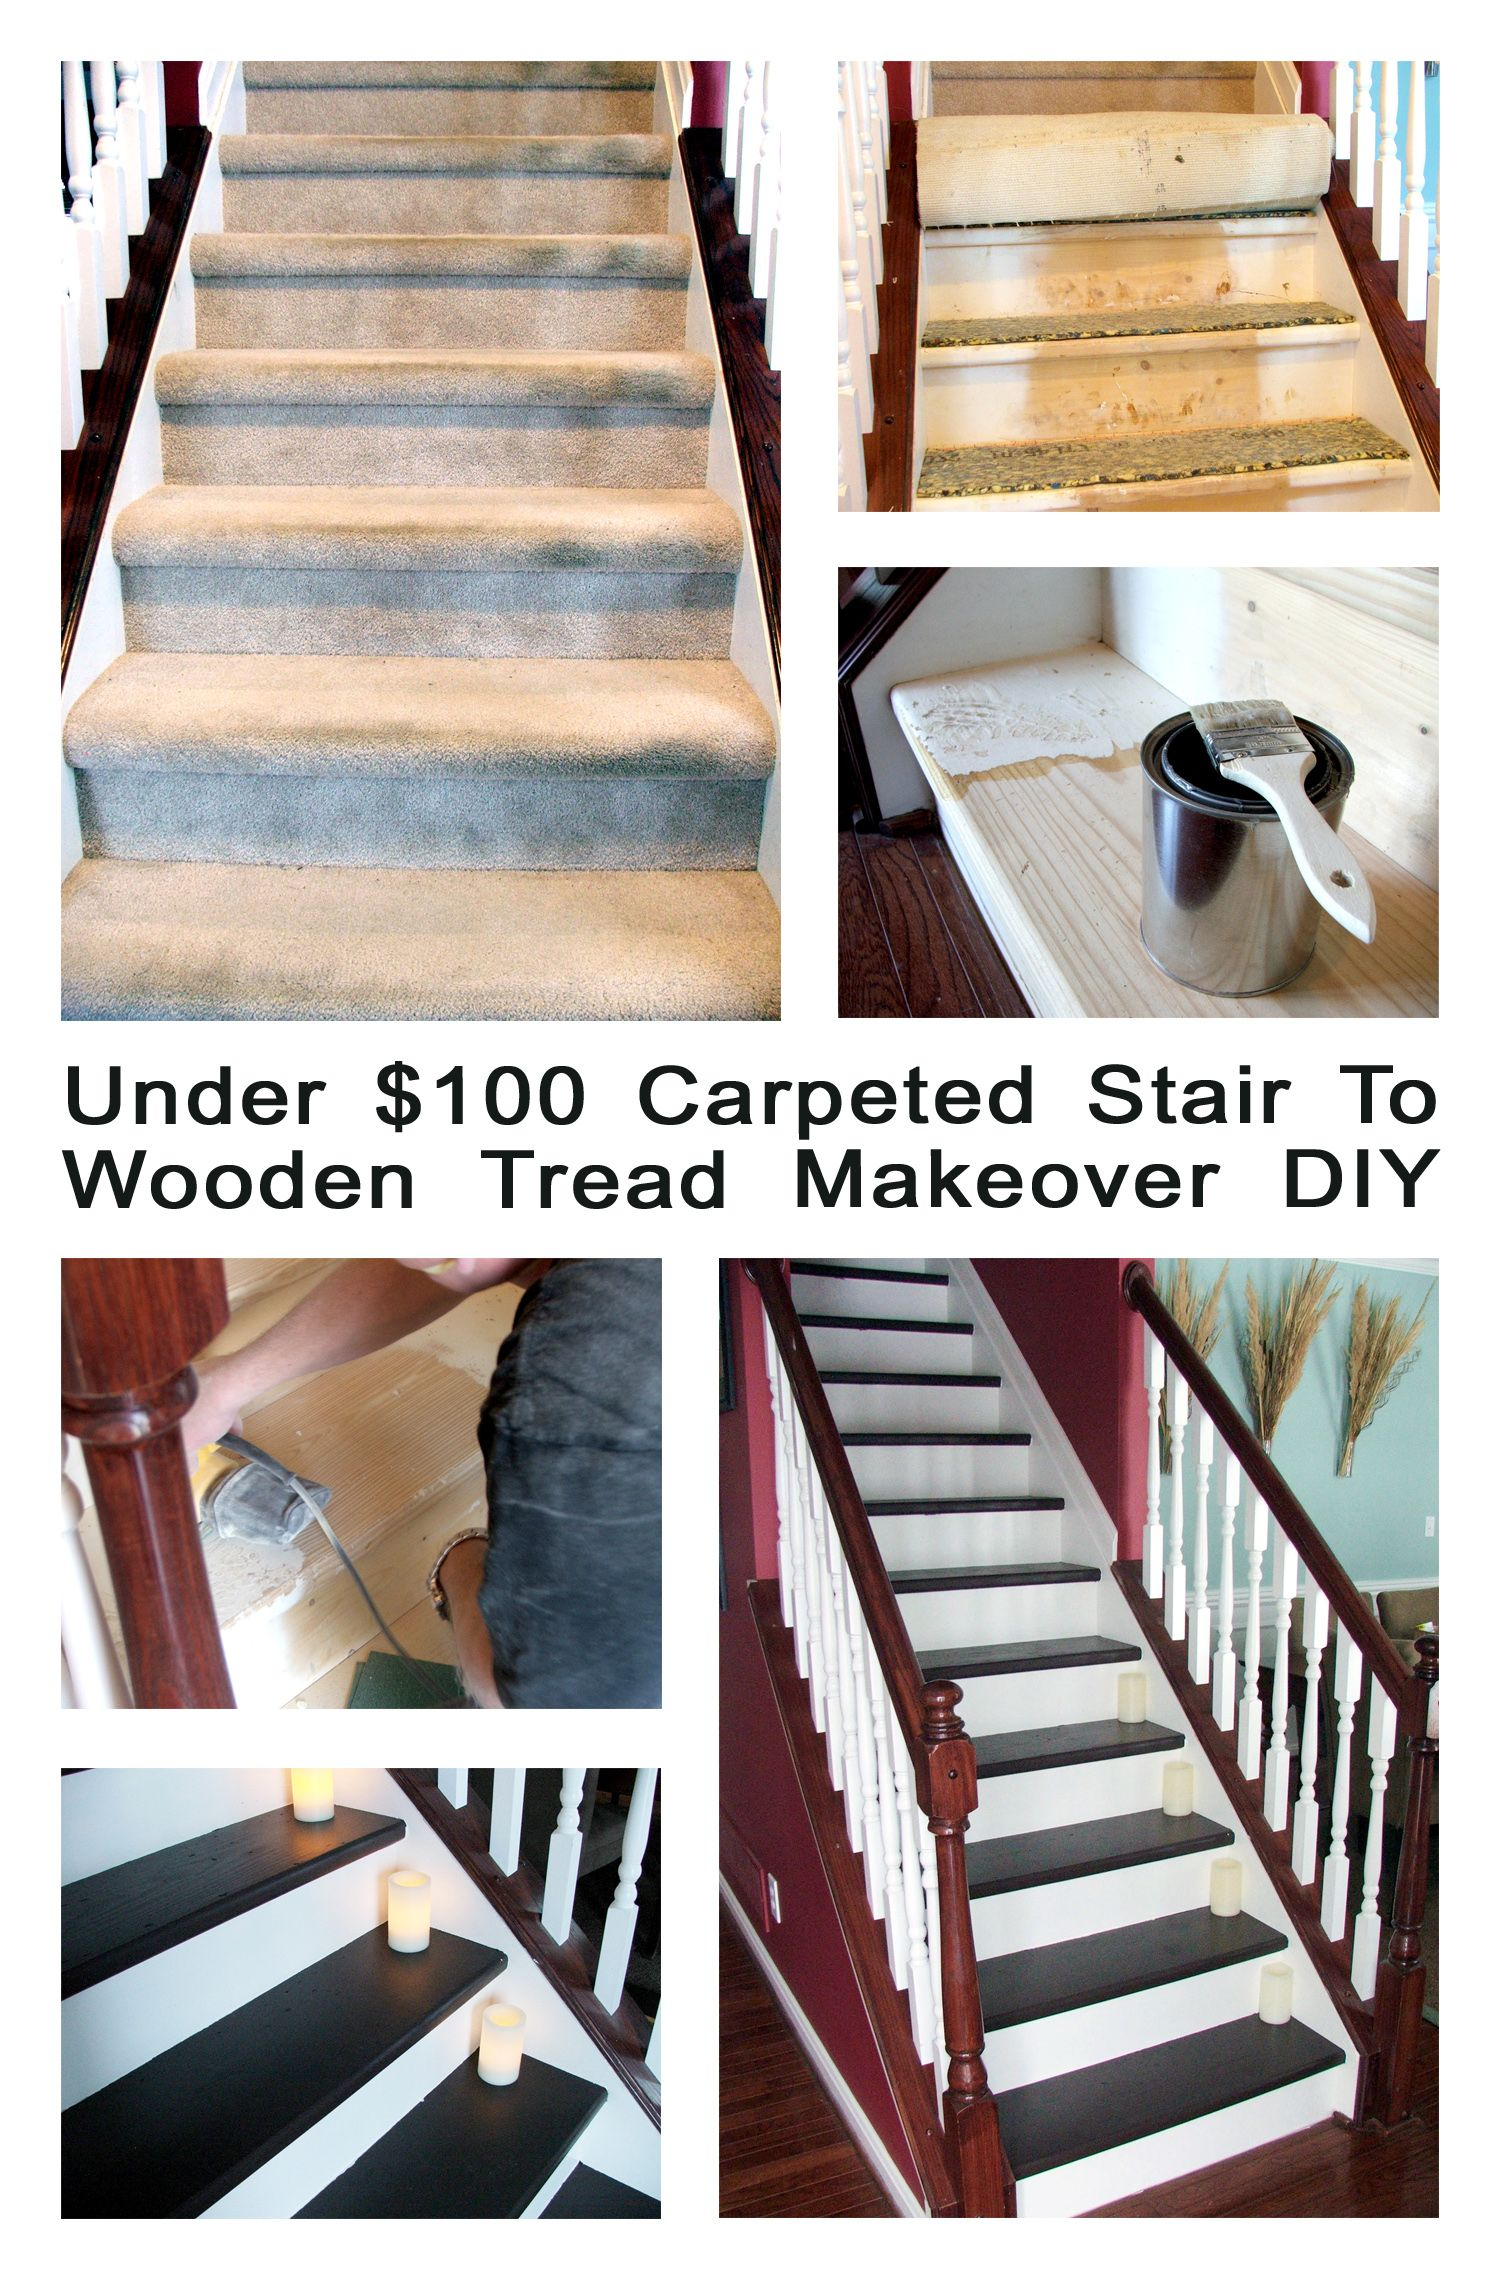 Under 100 Dollar Staircase Makeover Carpet To Wood Treads Tutorial Diy Staircase Staircase Makeover Diy Home Improvement